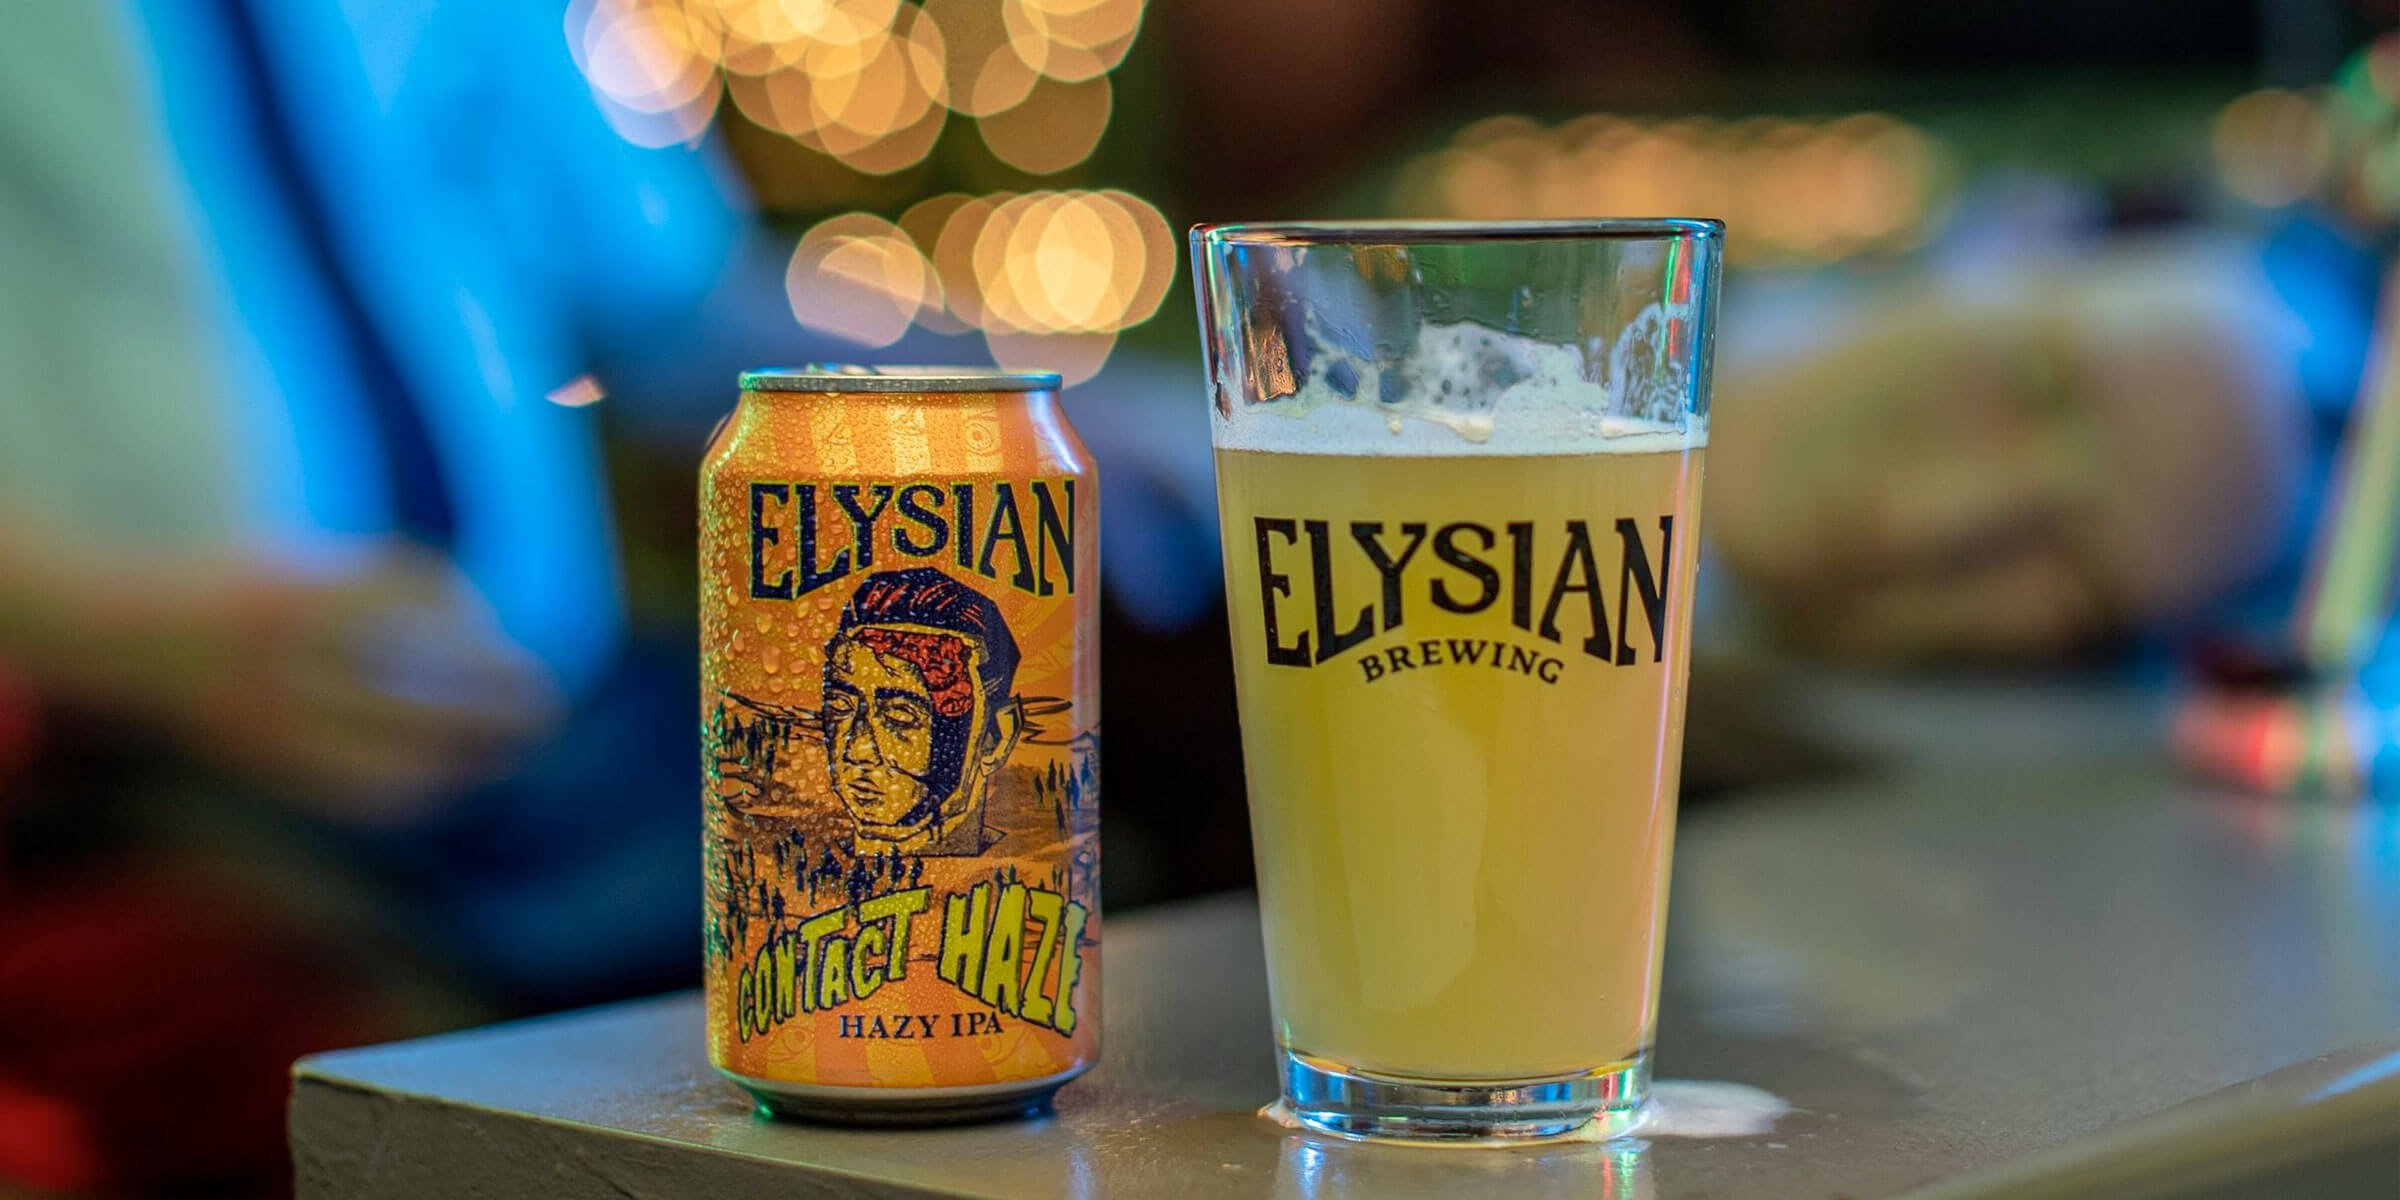 Elysian Brewing Company, a premier nationwide brewer, lifts hazy IPAs this month with the launch of Contact Haze, featuring unexpected sensory dimensions.